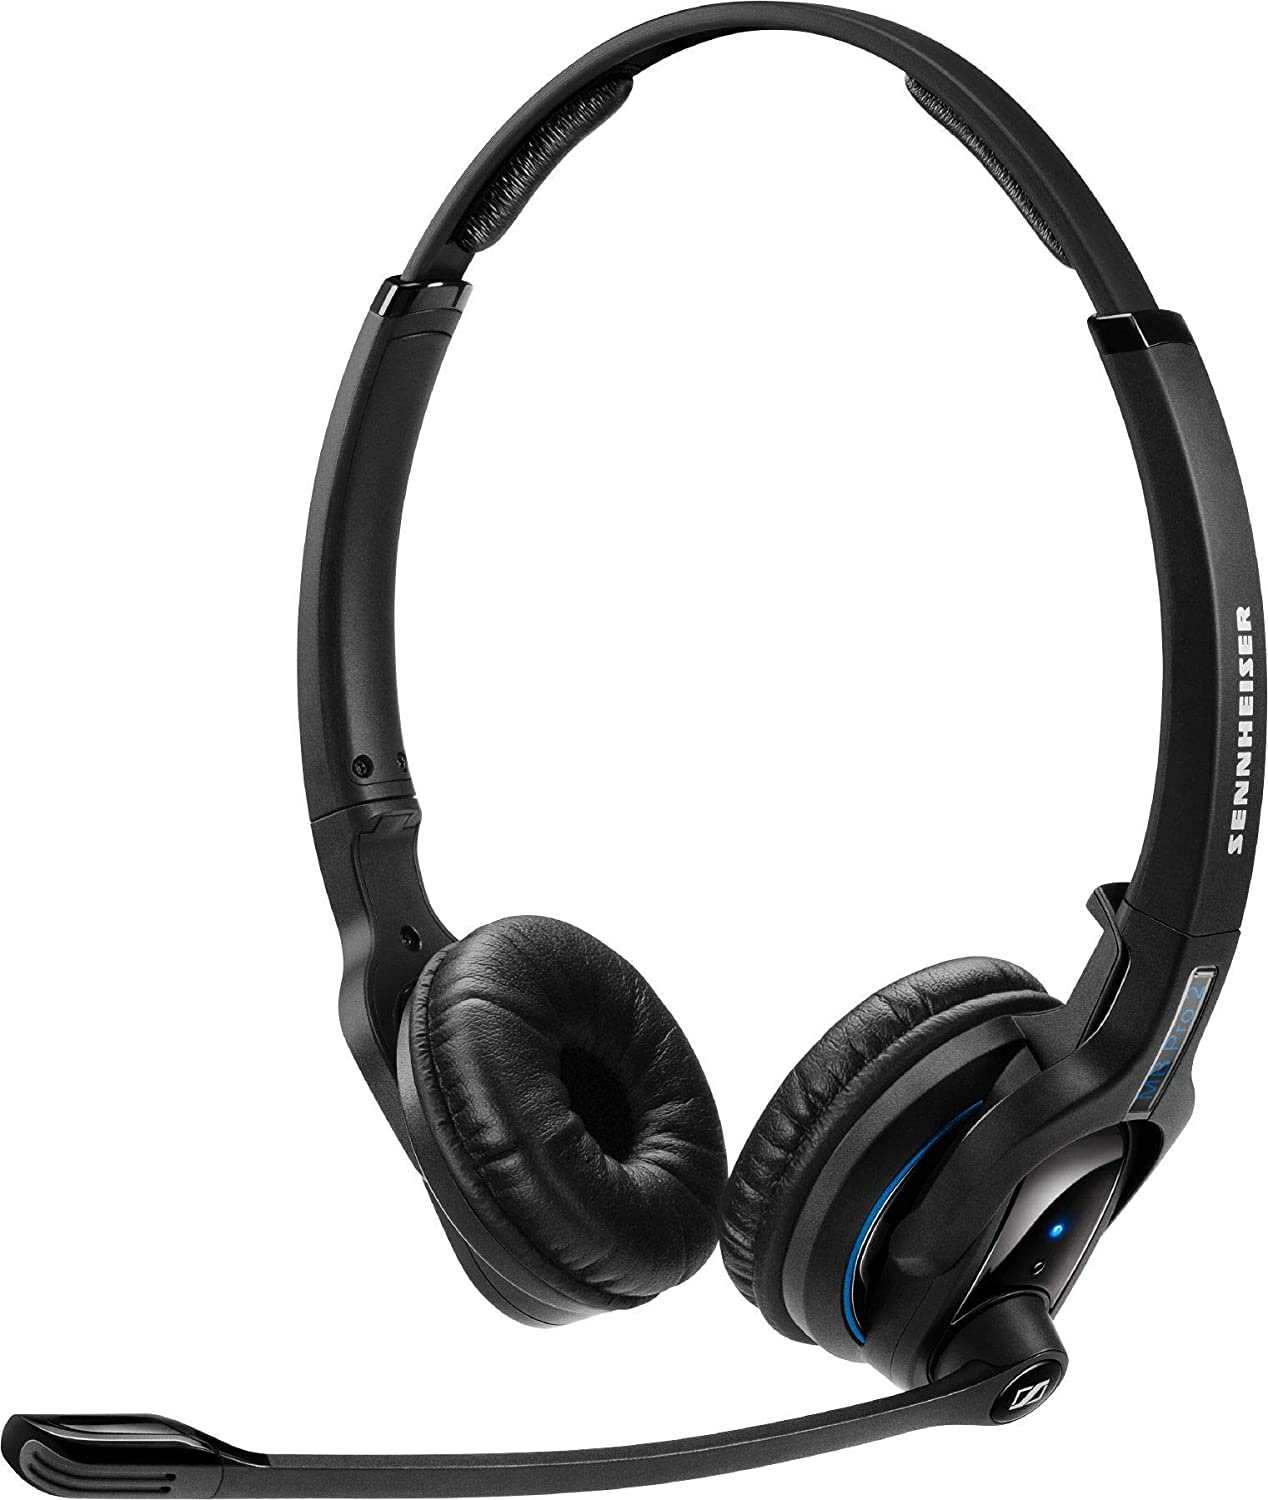 Sennheiser MB Pro 2 UC (506045) - Dual-Sided, Dual-Connectivity, Wireless Bluetooth Headset | For Desk/Mobile Phone & Softphone/PC Connection| w/ HD Sound & Major UC Platform Compatibility (Black) Sennheiser Enterprise Solutions 615104250703